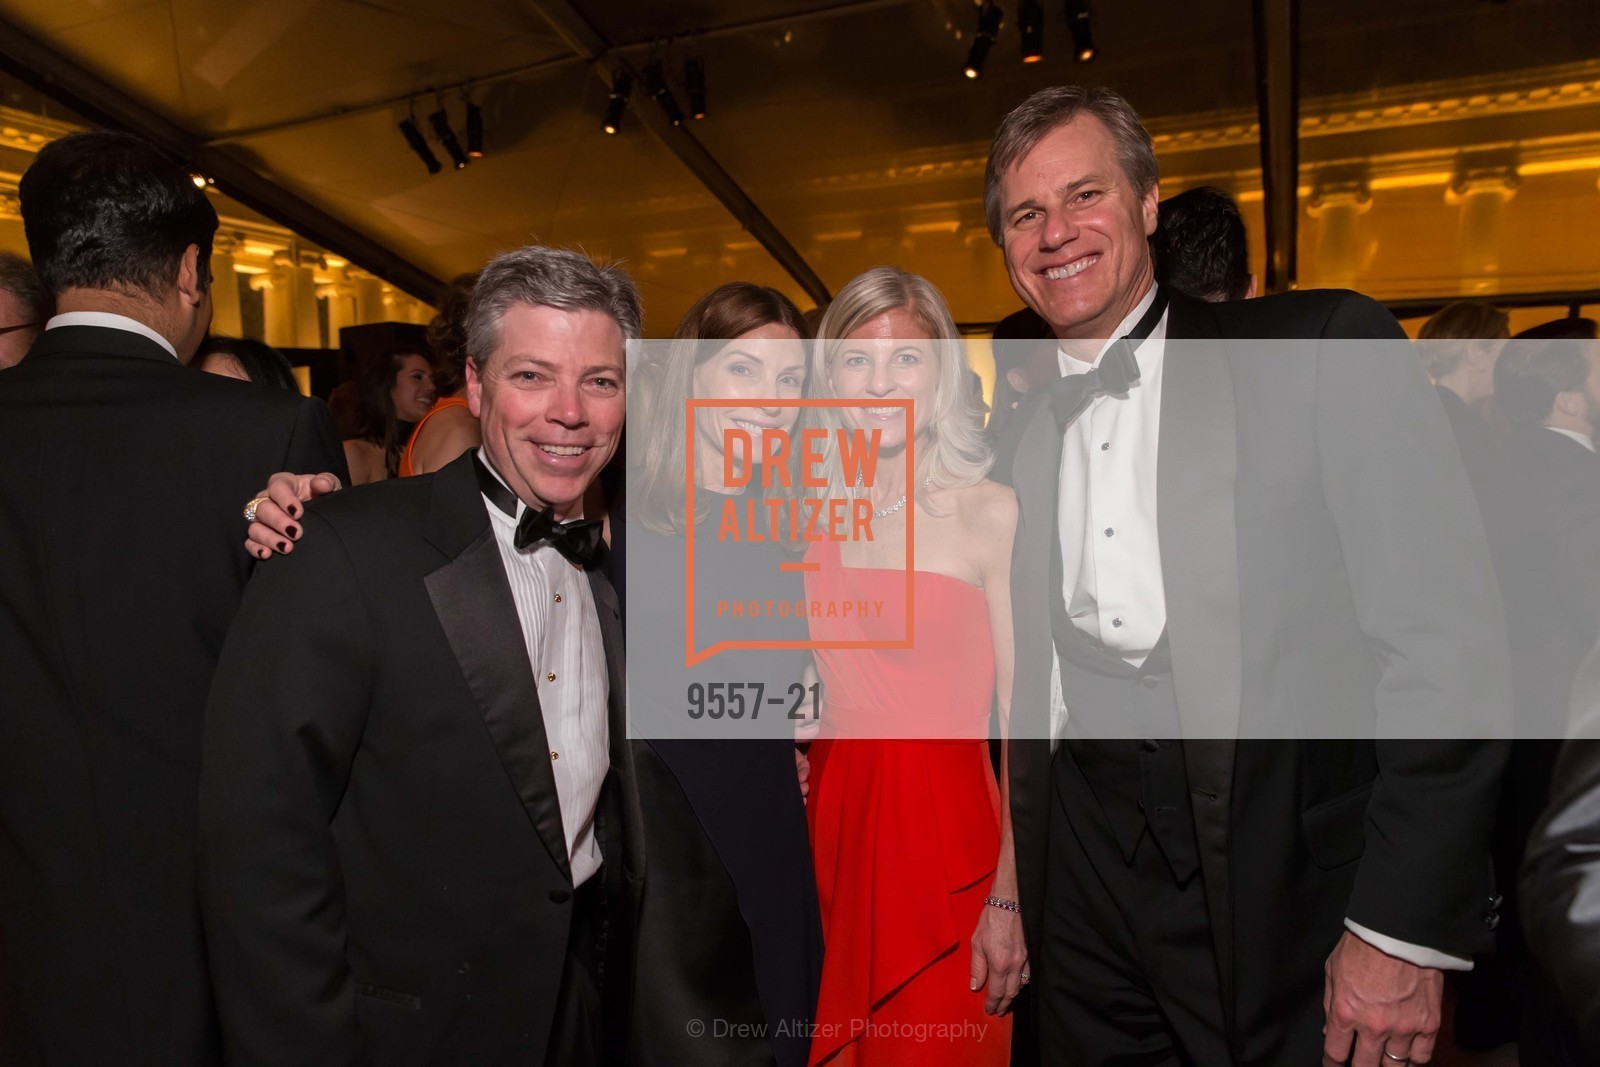 Lisa Zanze, Jim Zanze, DIOR and CONDE NAST Sponsor the MidWinter Gala, March 26th, 2015,Drew Altizer, Drew Altizer Photography, full-service event agency, private events, San Francisco photographer, photographer California